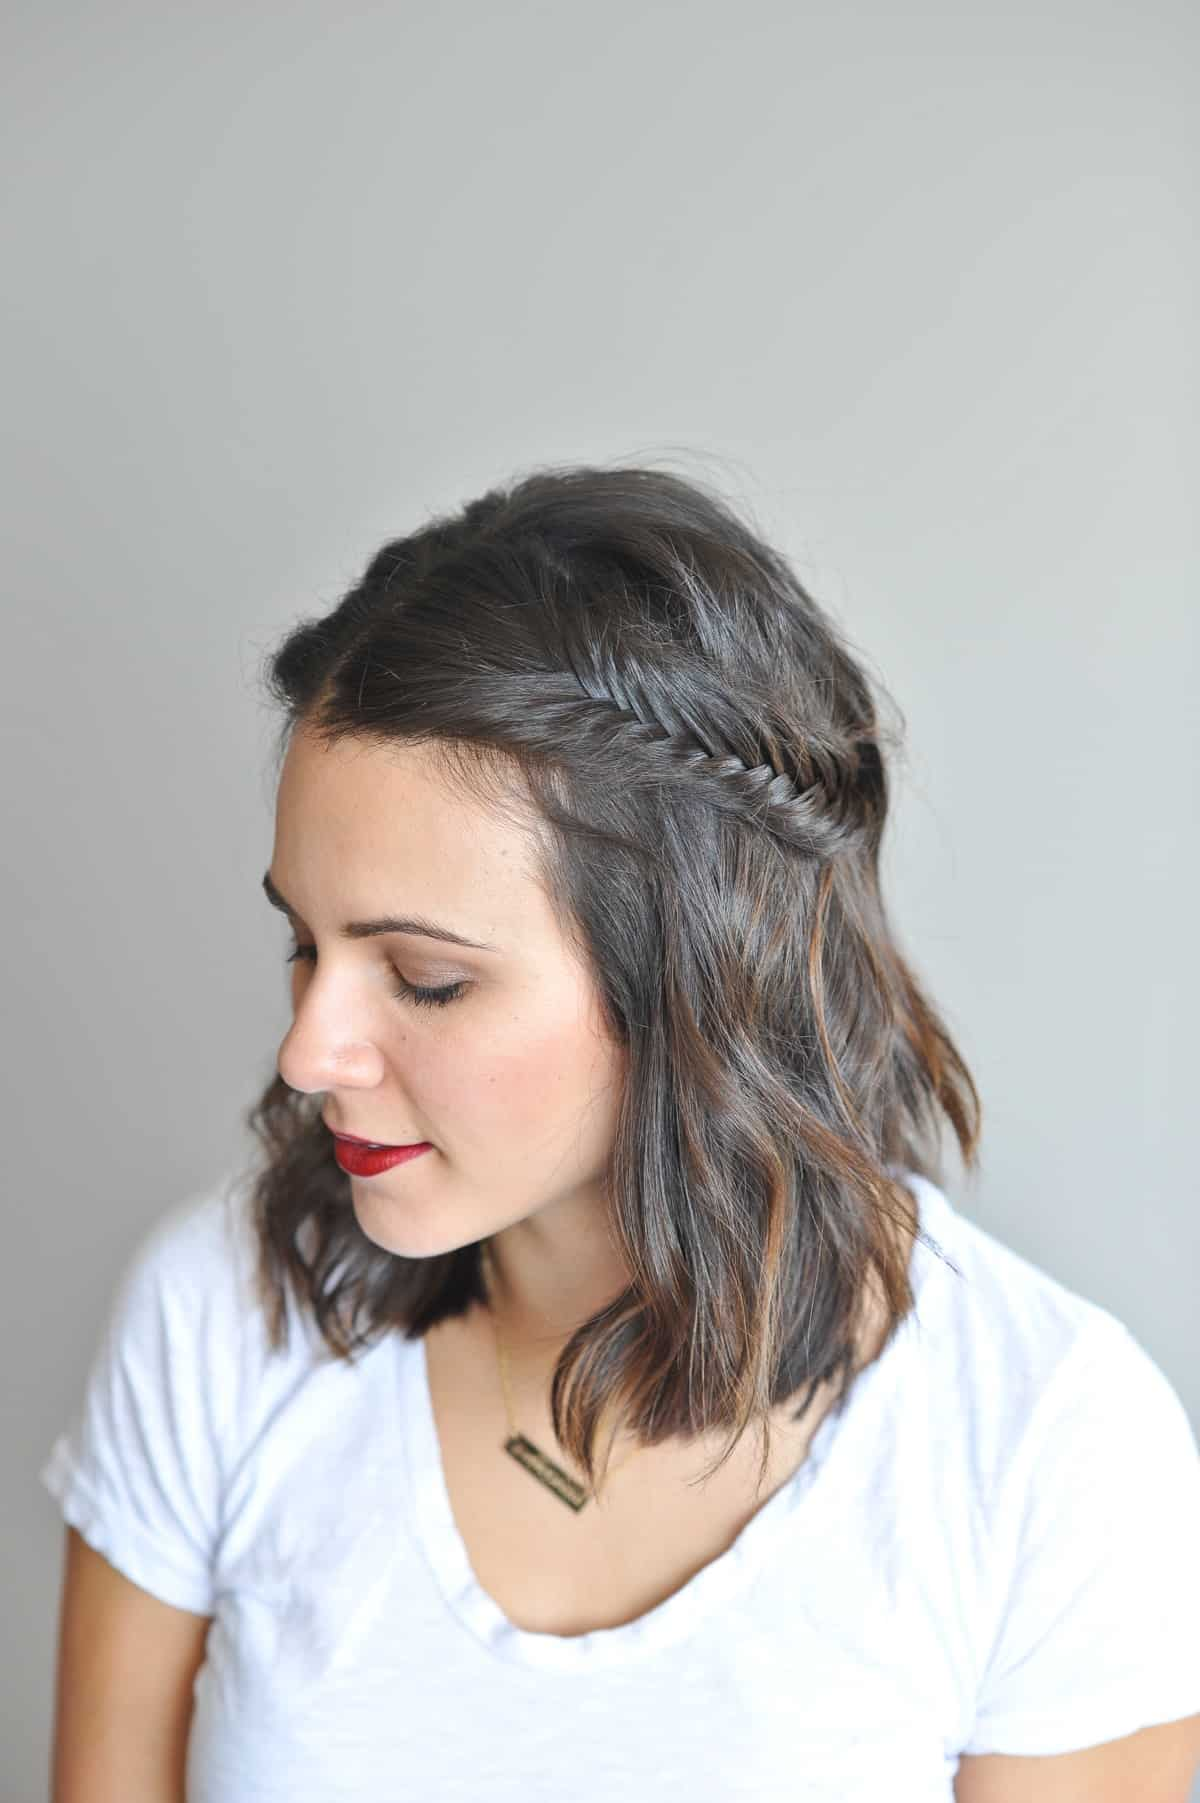 How to stylish make hair plates recommend to wear in autumn in 2019